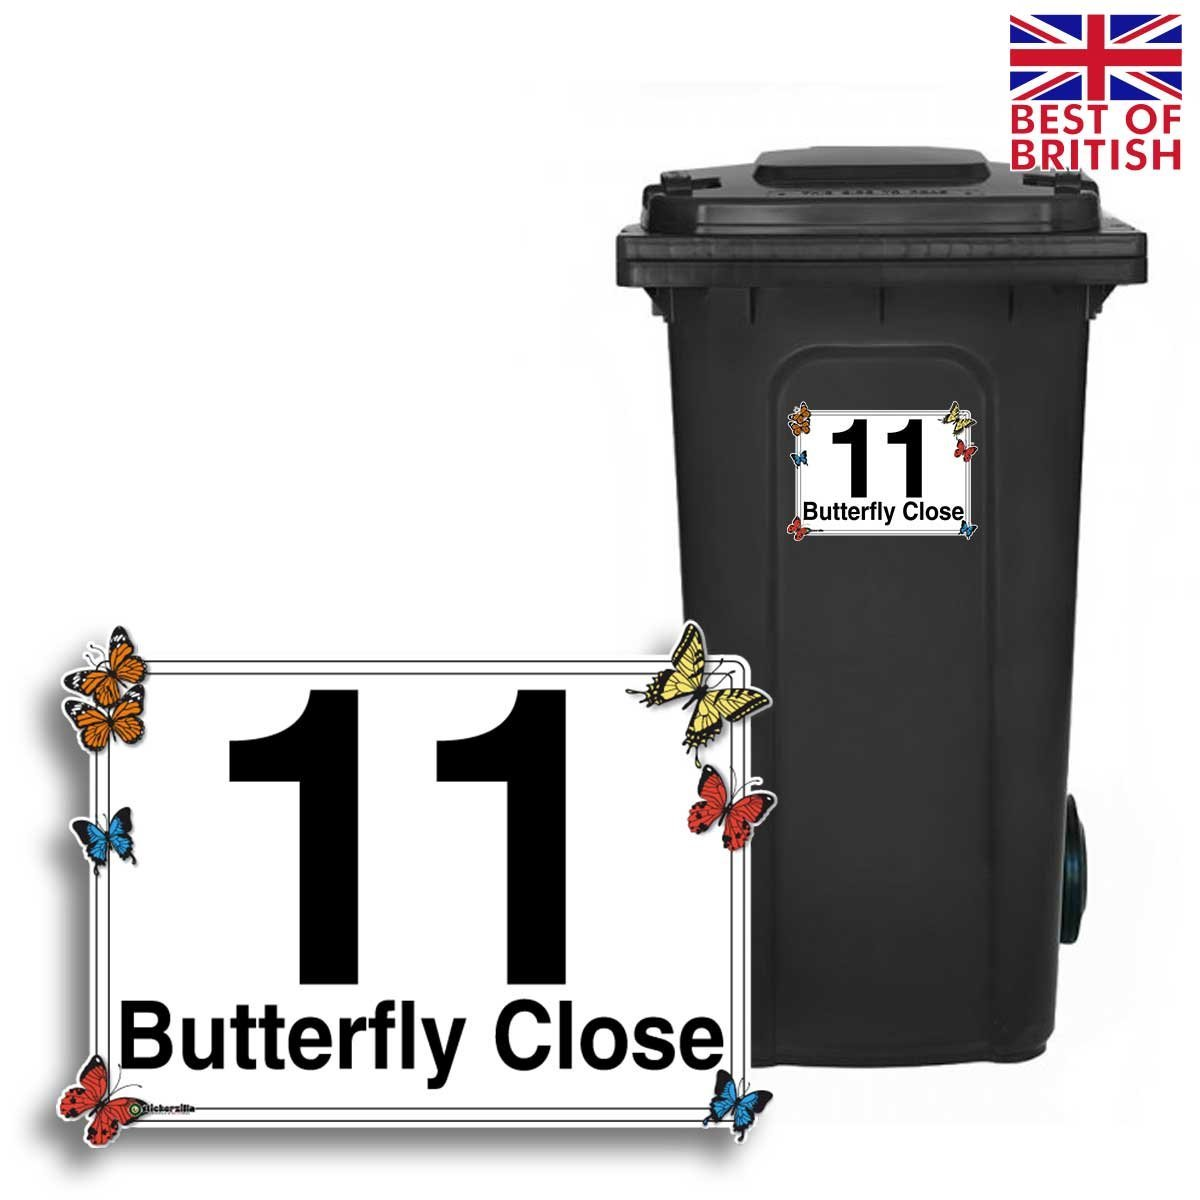 Butterfly - Personalised Wheelie Bin Sticker/Vinyl Labels with House Number & Street Name - Size A5 [4 Pack] Stickerzilla